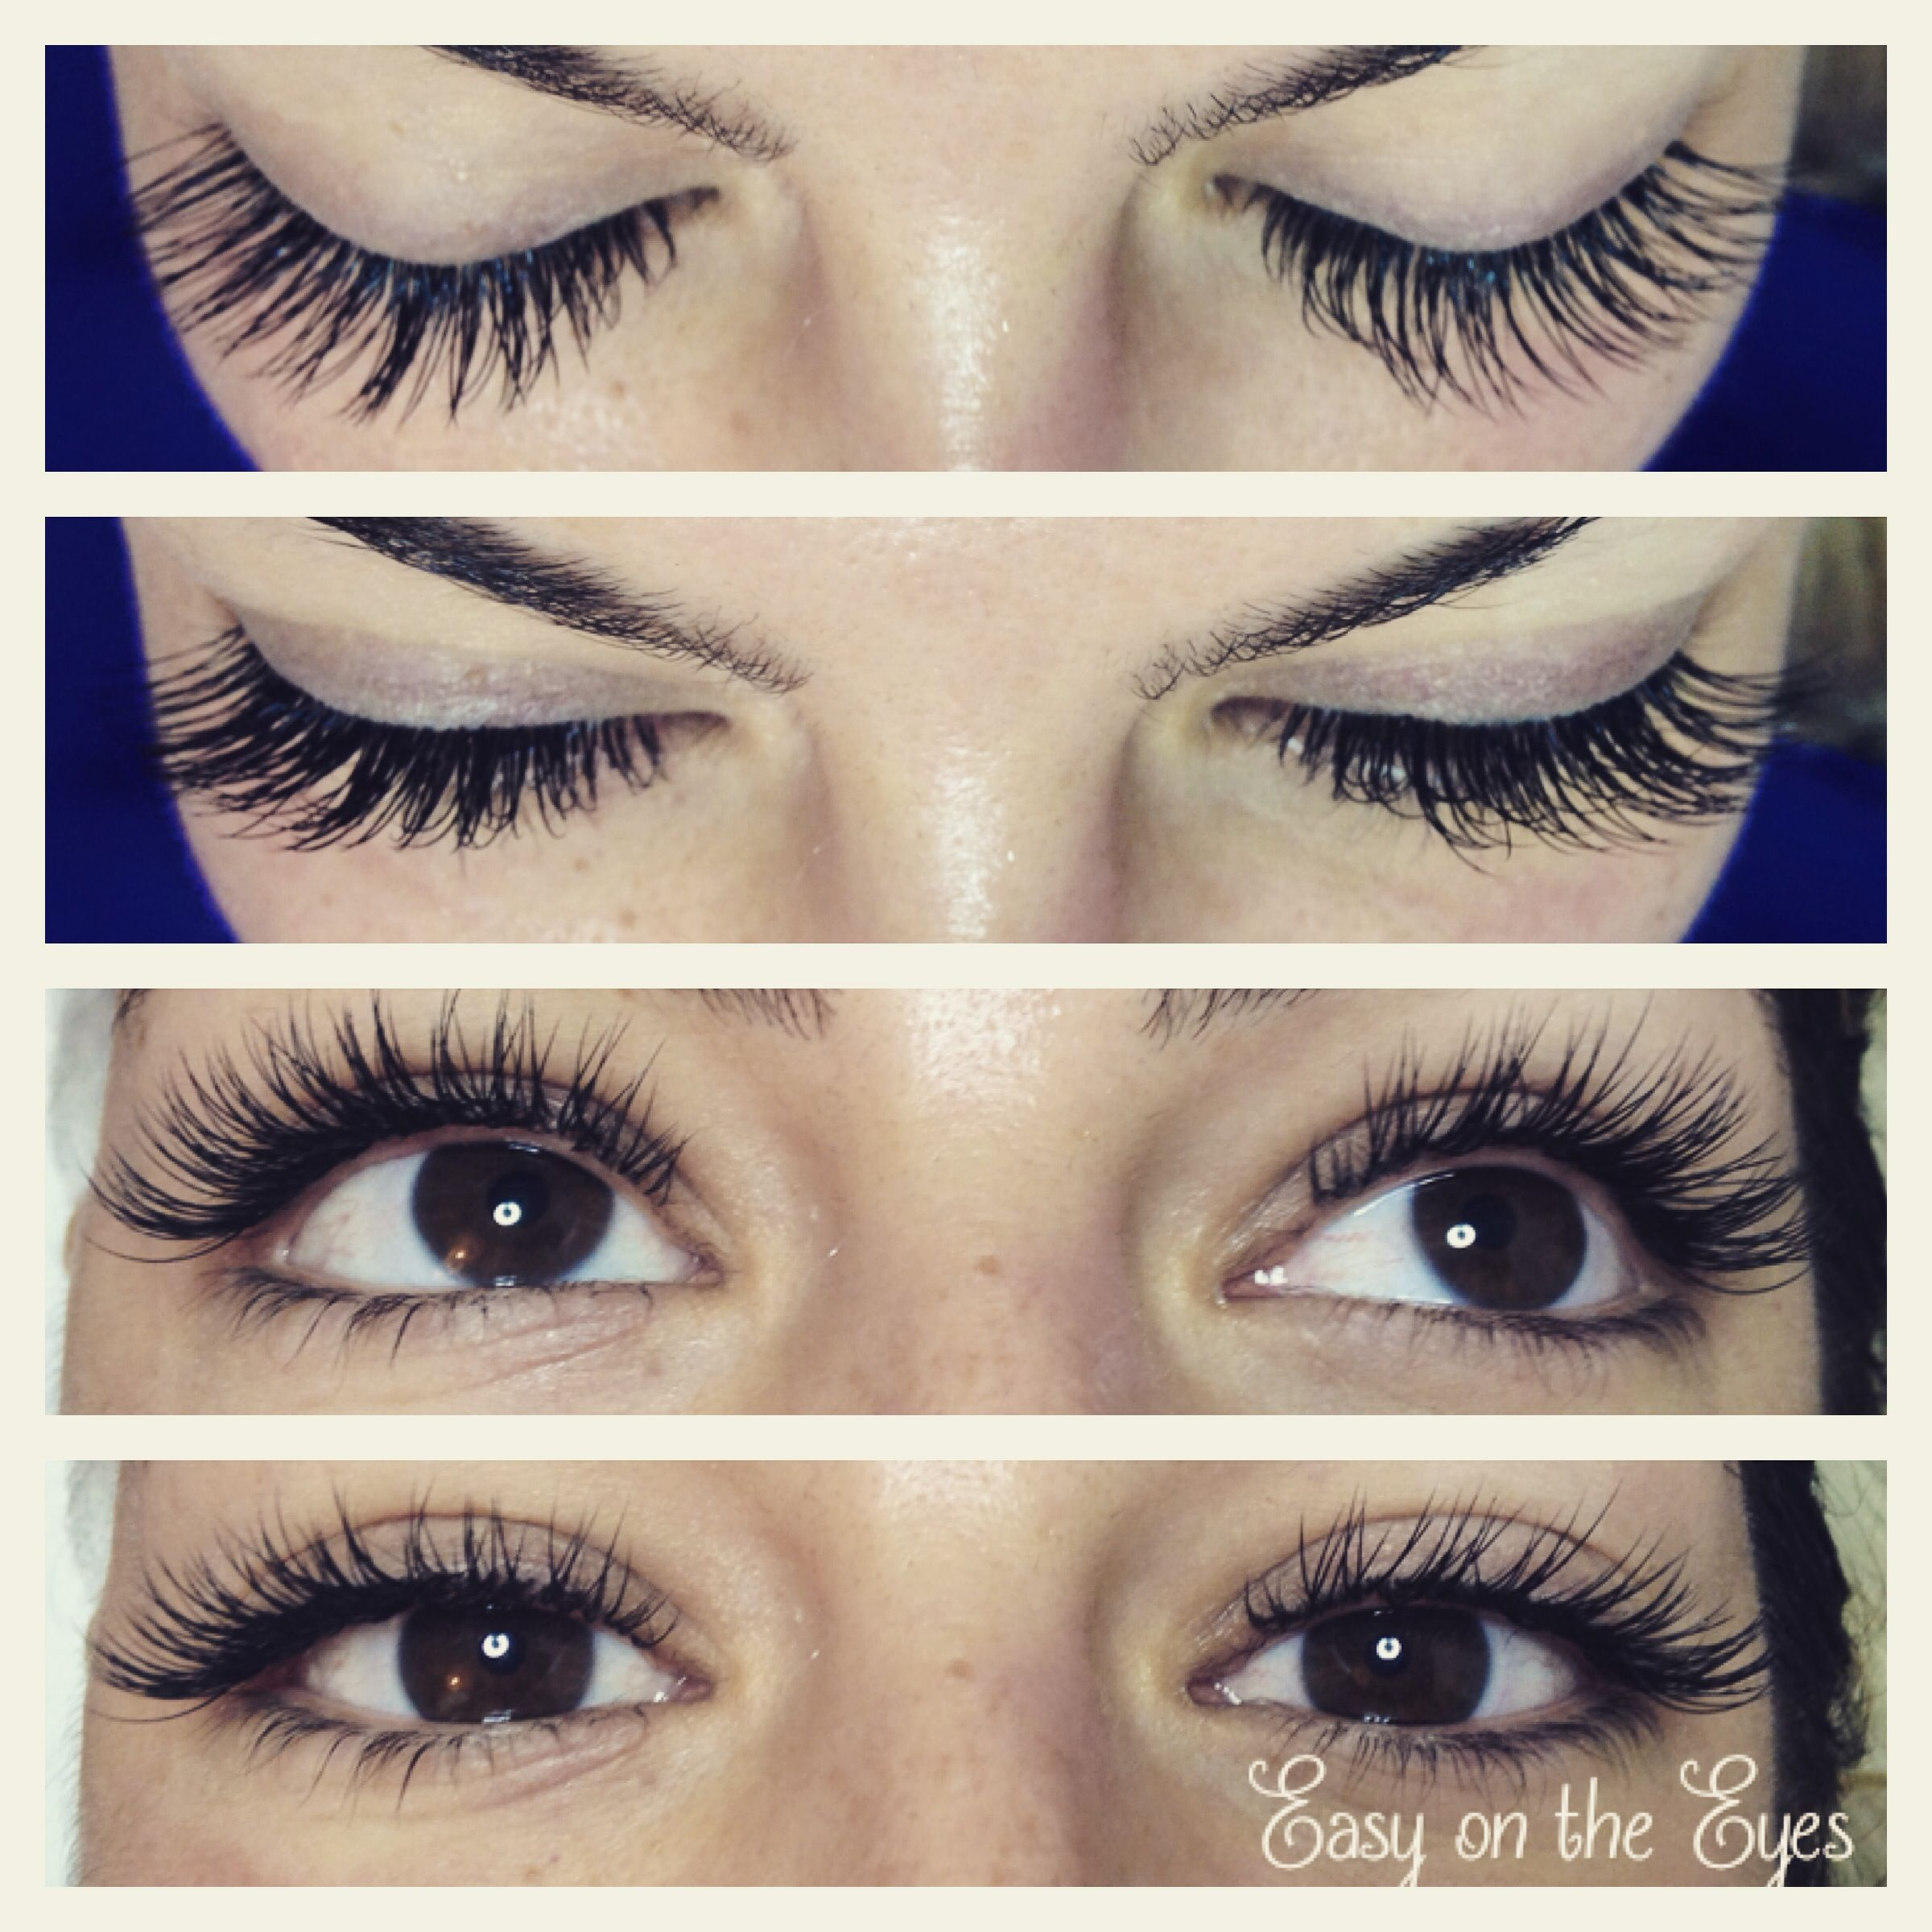 Eyelash extensions before and after would be great for